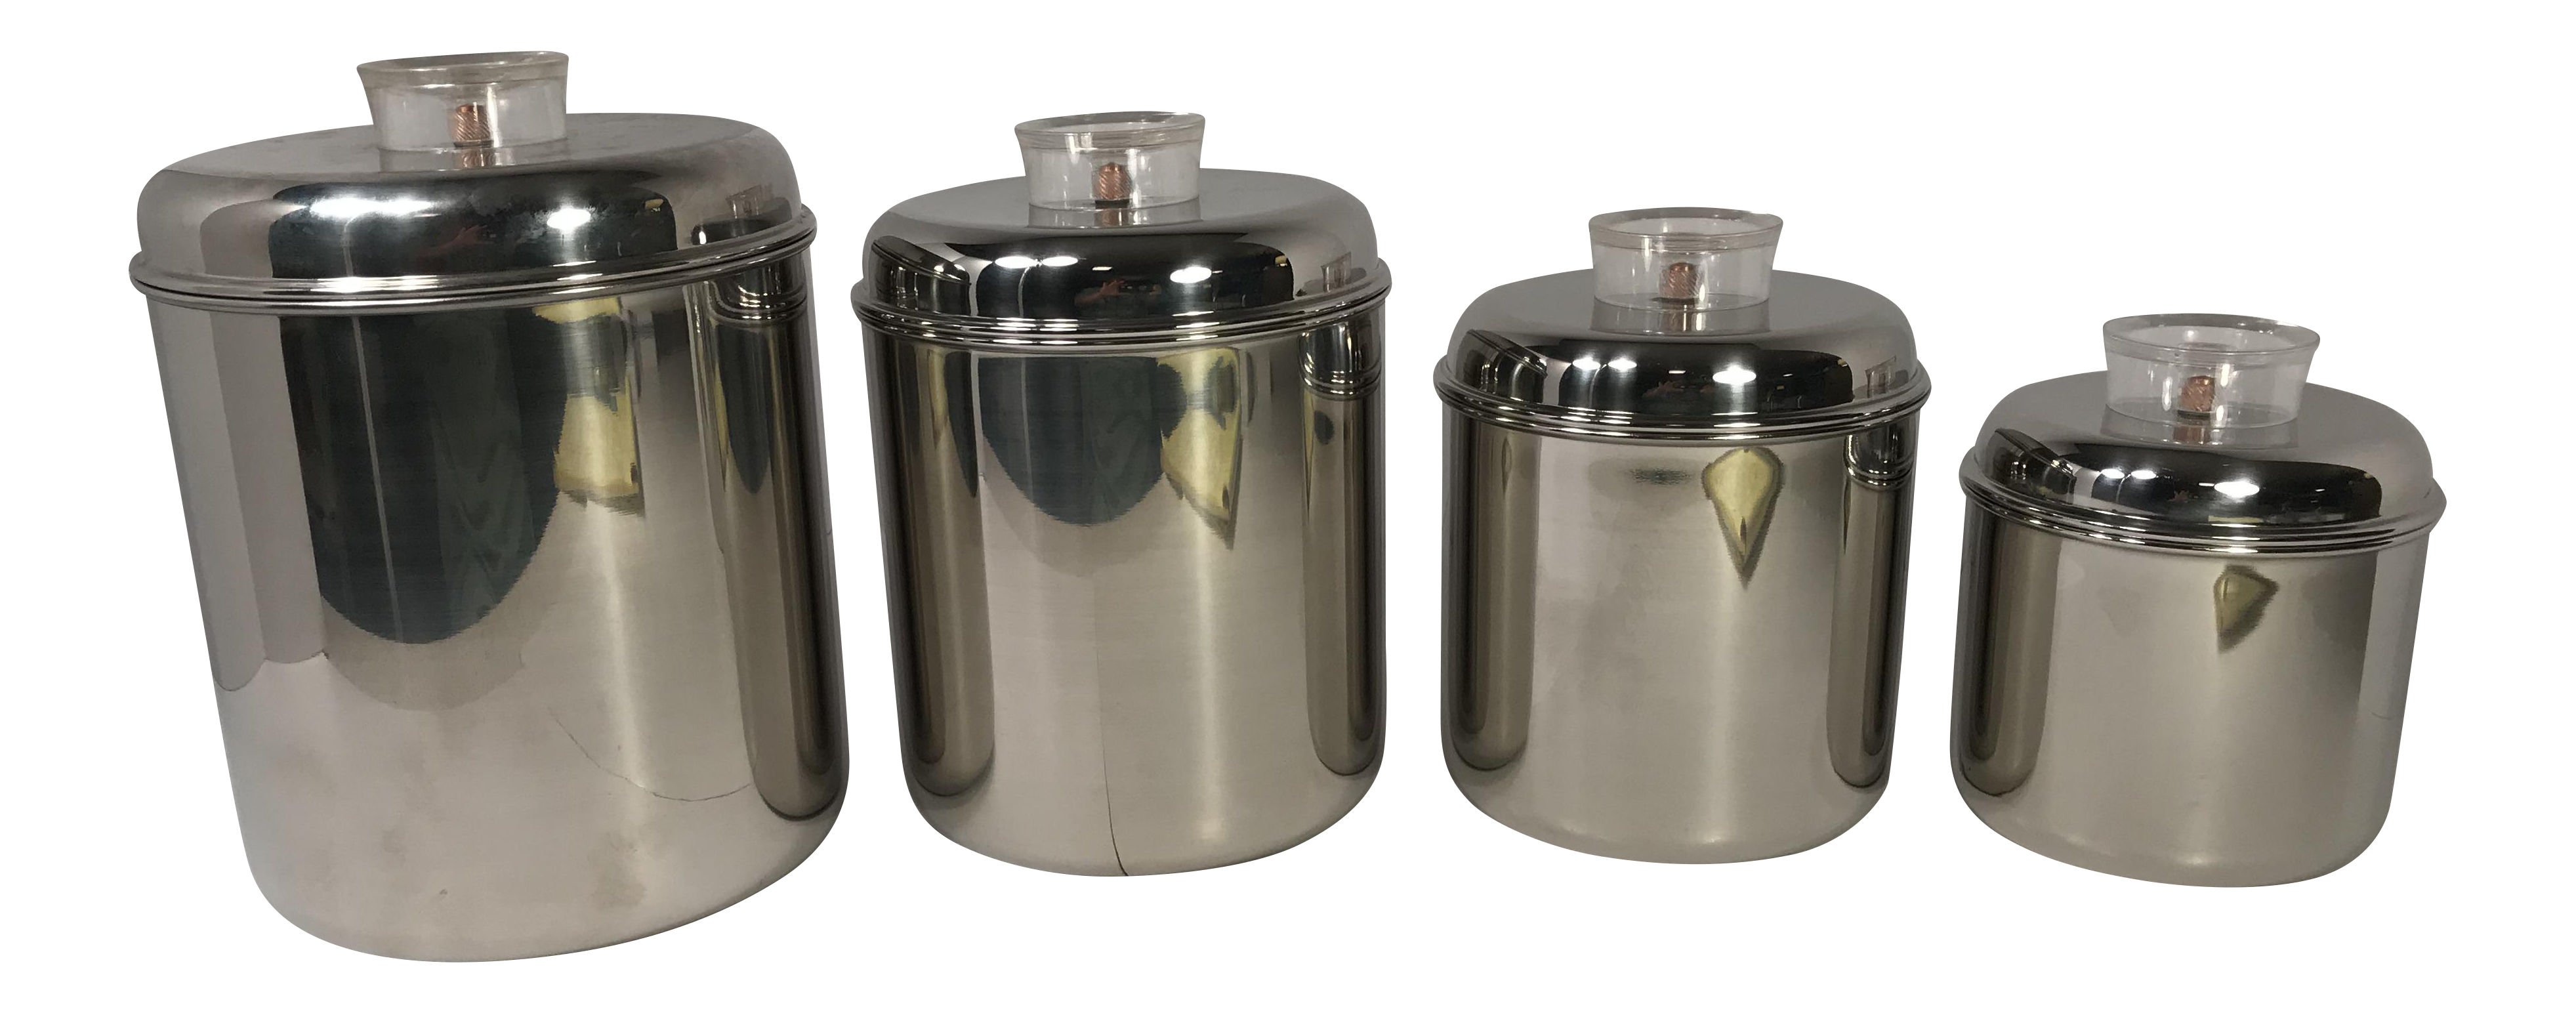 Revere Ware Stainless Steel Canisters   Set Of 4